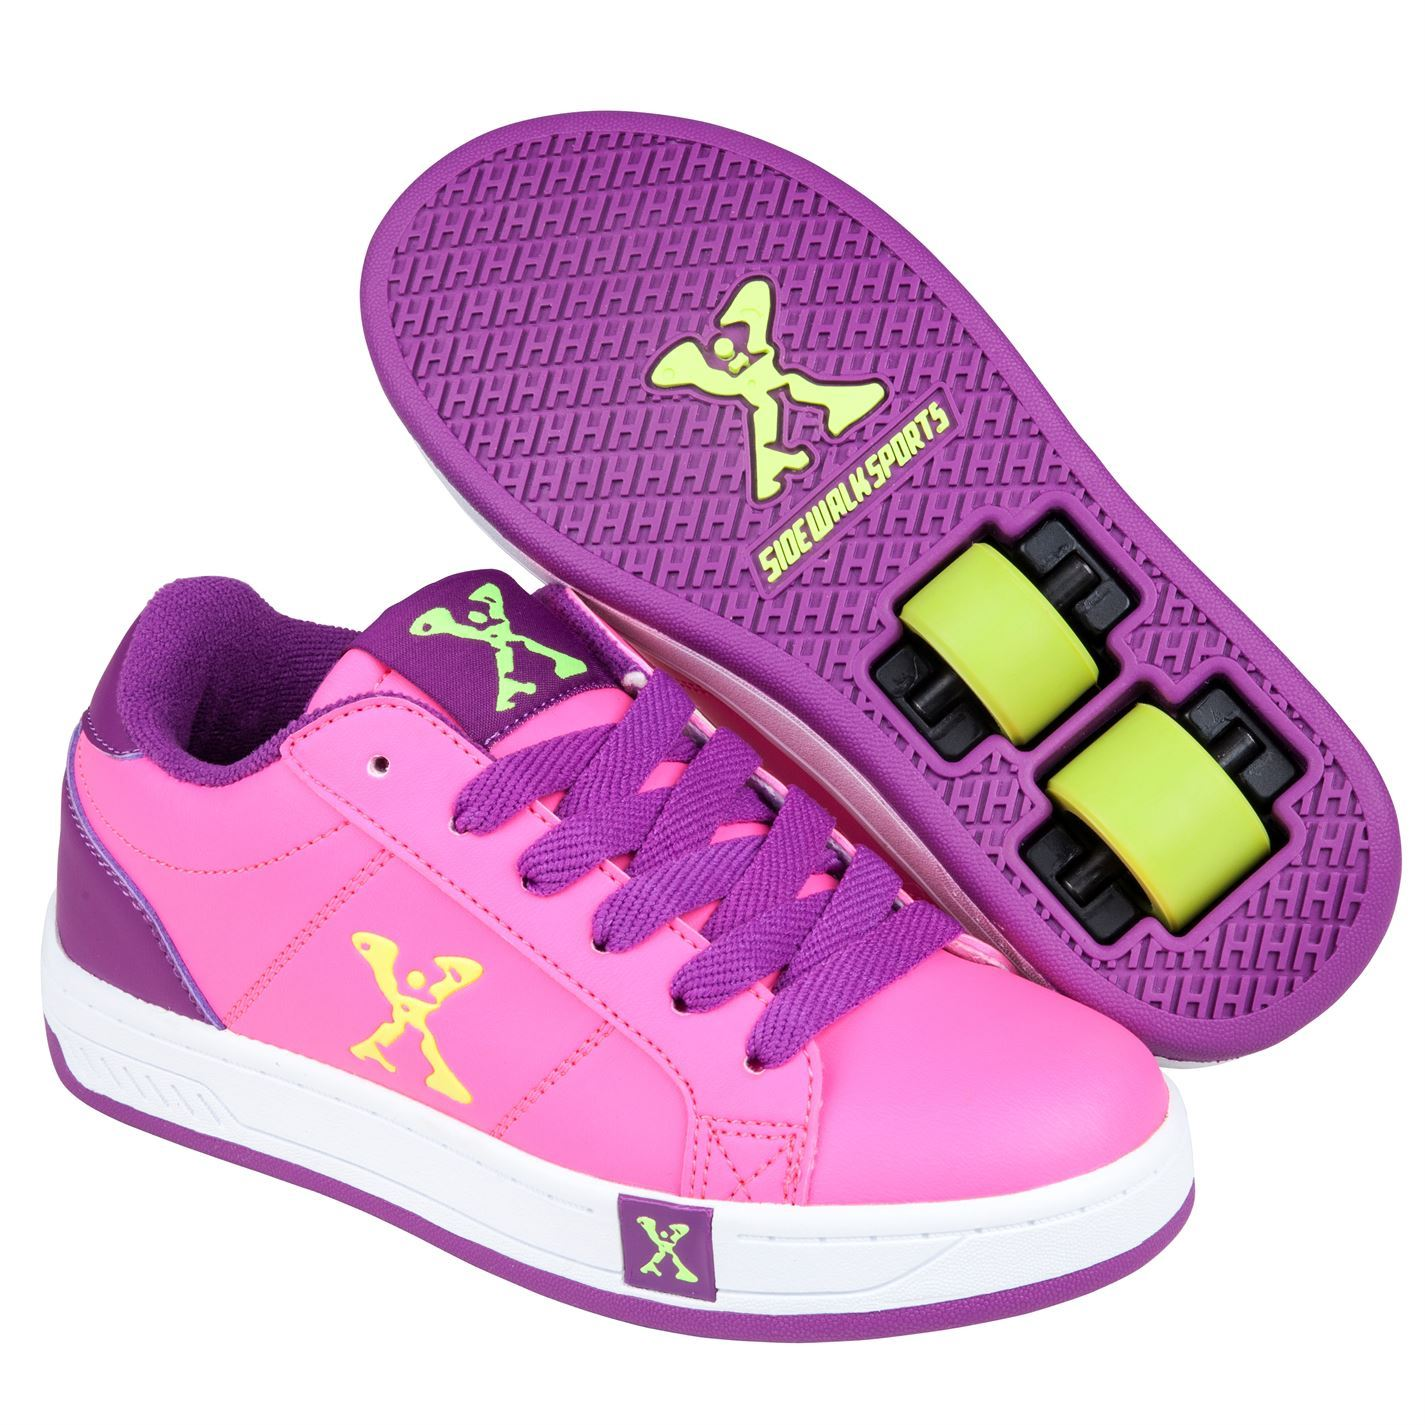 Amazon Co Uk Laces Shoes For Kids Black Girs